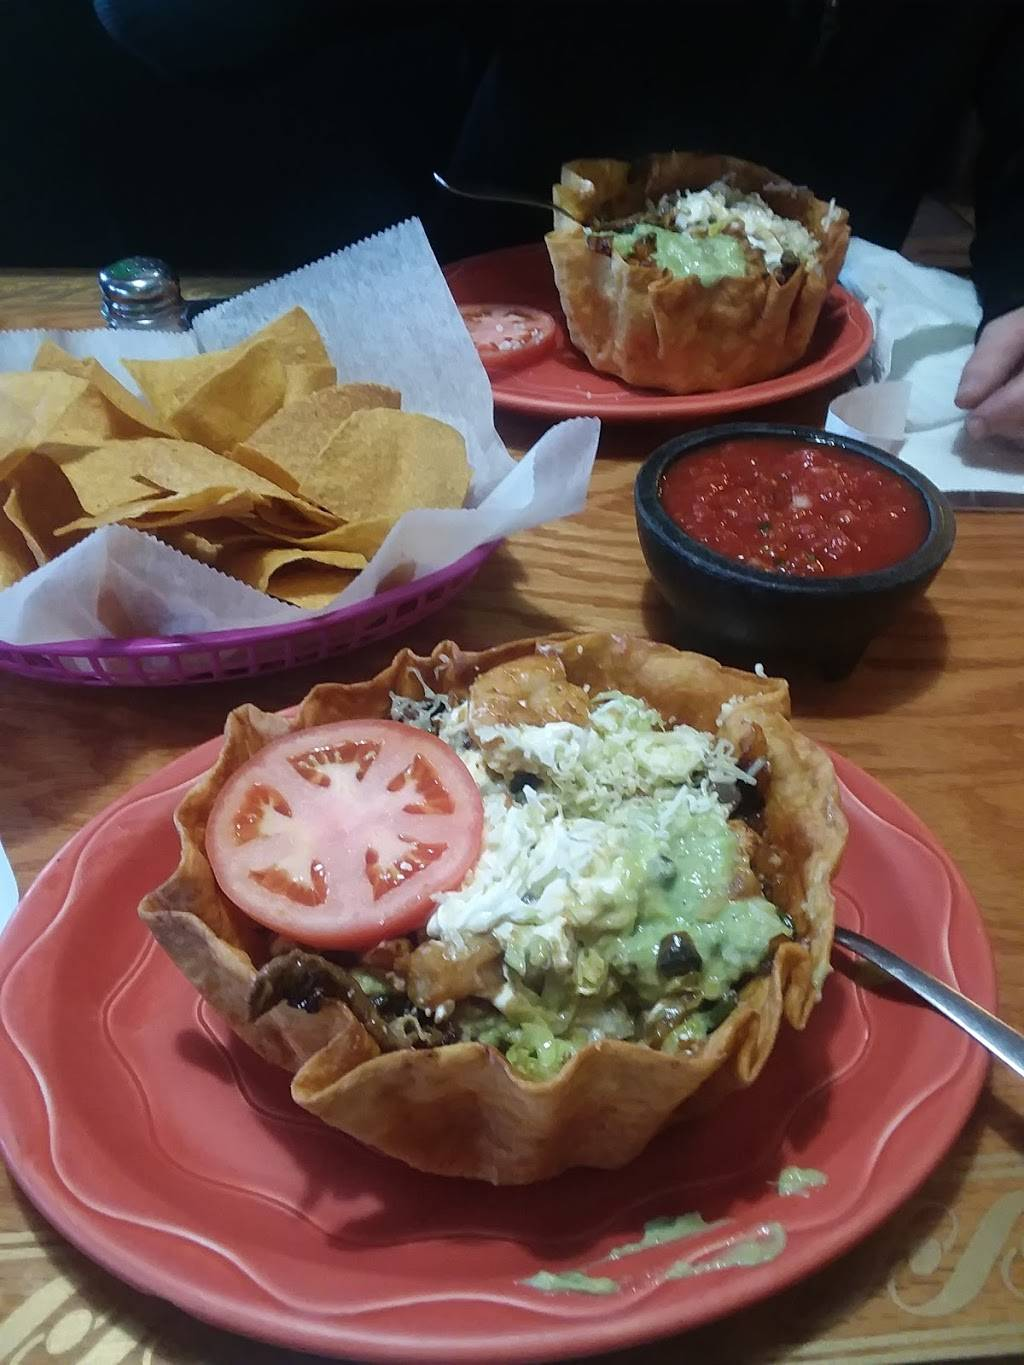 El Camino Real Mexican Restaurant | restaurant | 1115 N 3rd St, Terre Haute, IN 47807, USA | 8122311113 OR +1 812-231-1113